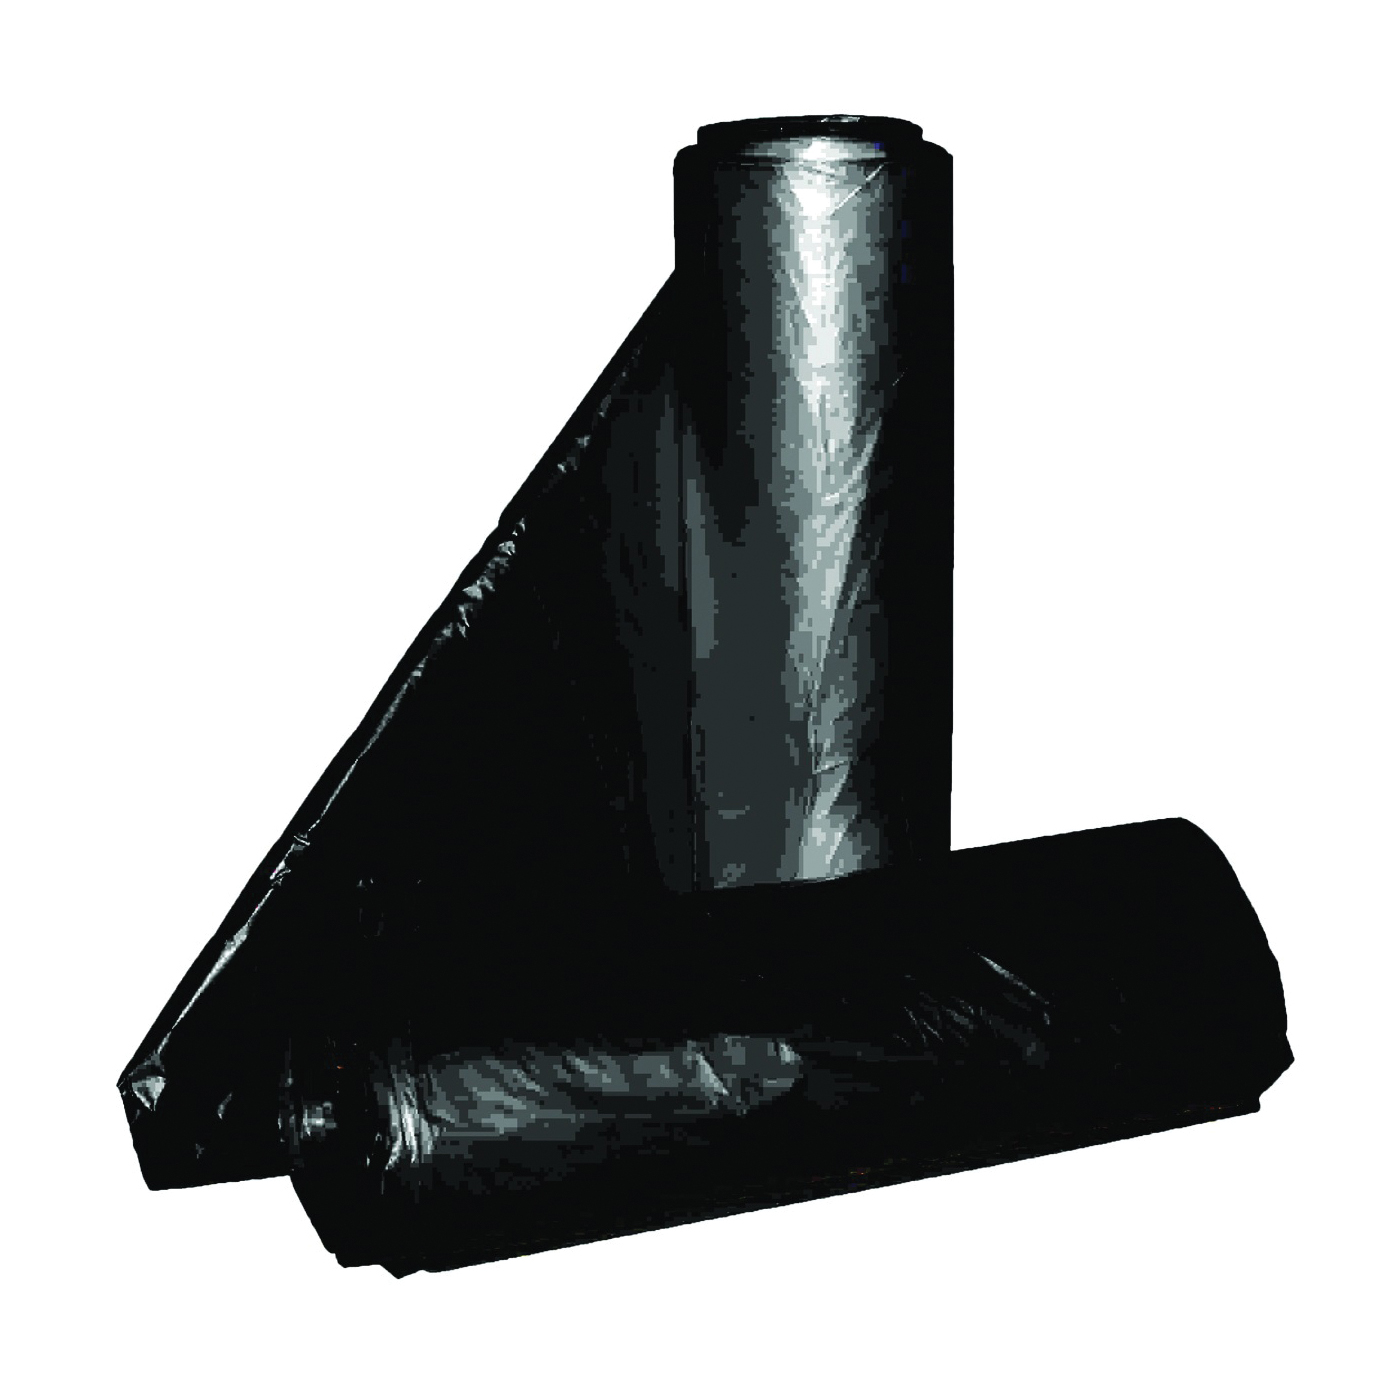 Picture of ALUF PLASTICS RL Series RL-4047XH Can Liner, 45 gal Capacity, Repro Blend, Black